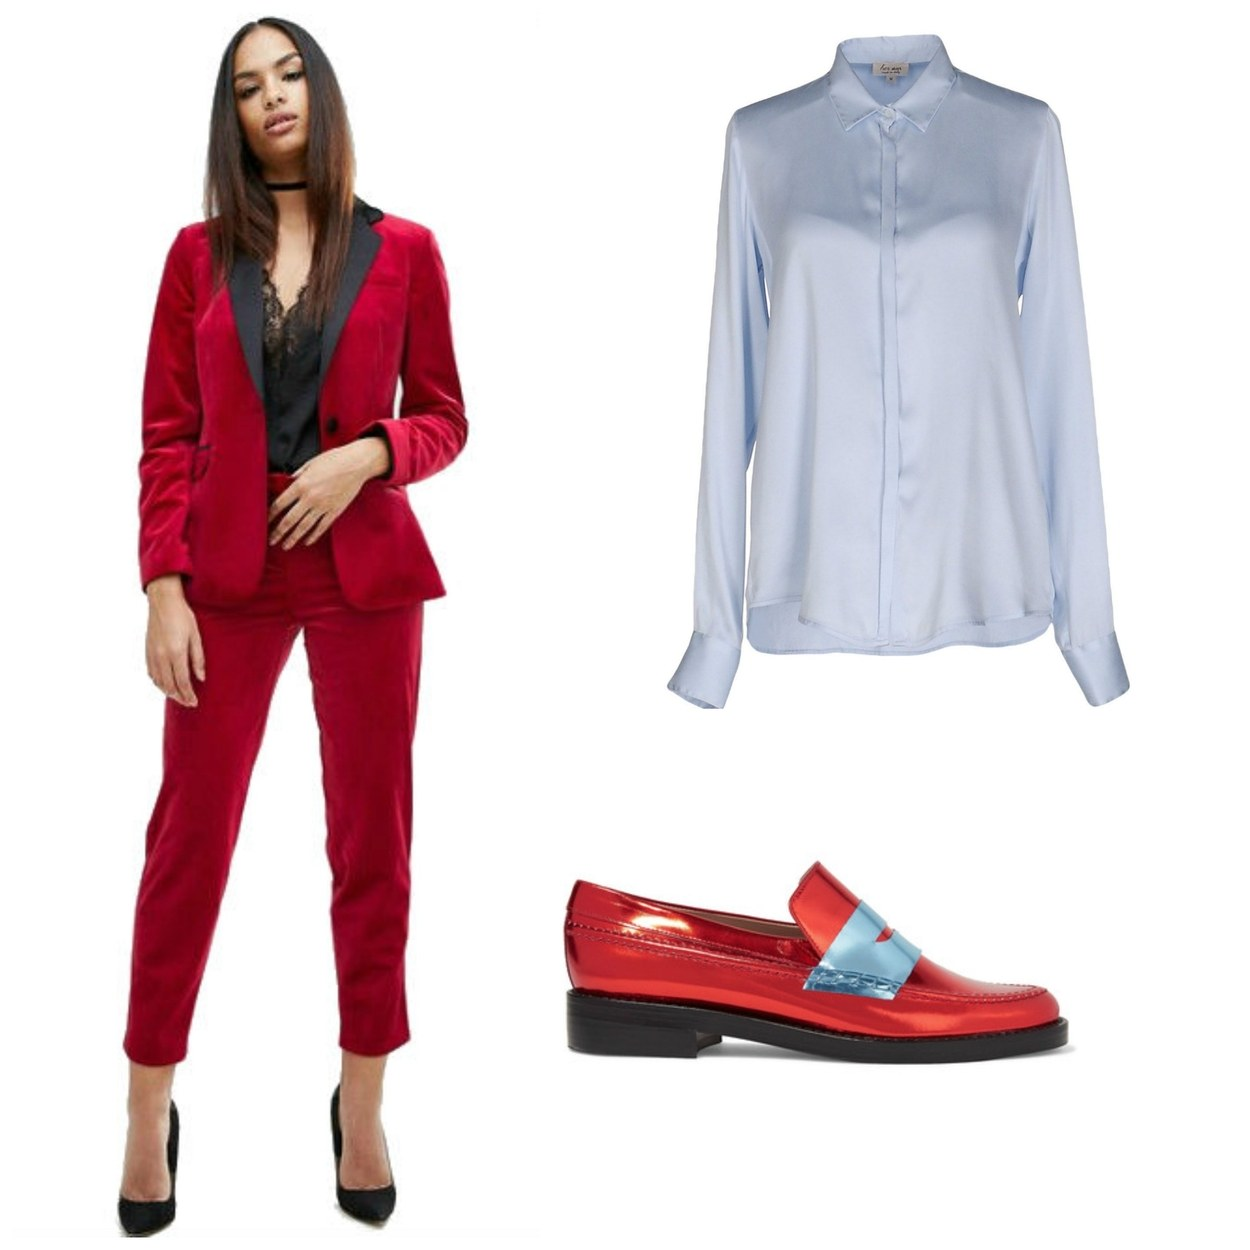 red-slim-pants-blue-light-collared-shirt-red-jacket-blazer-suit-red-shoe-loafers-fall-winter-thanksgiving-outfits-holidays-dinner.jpg